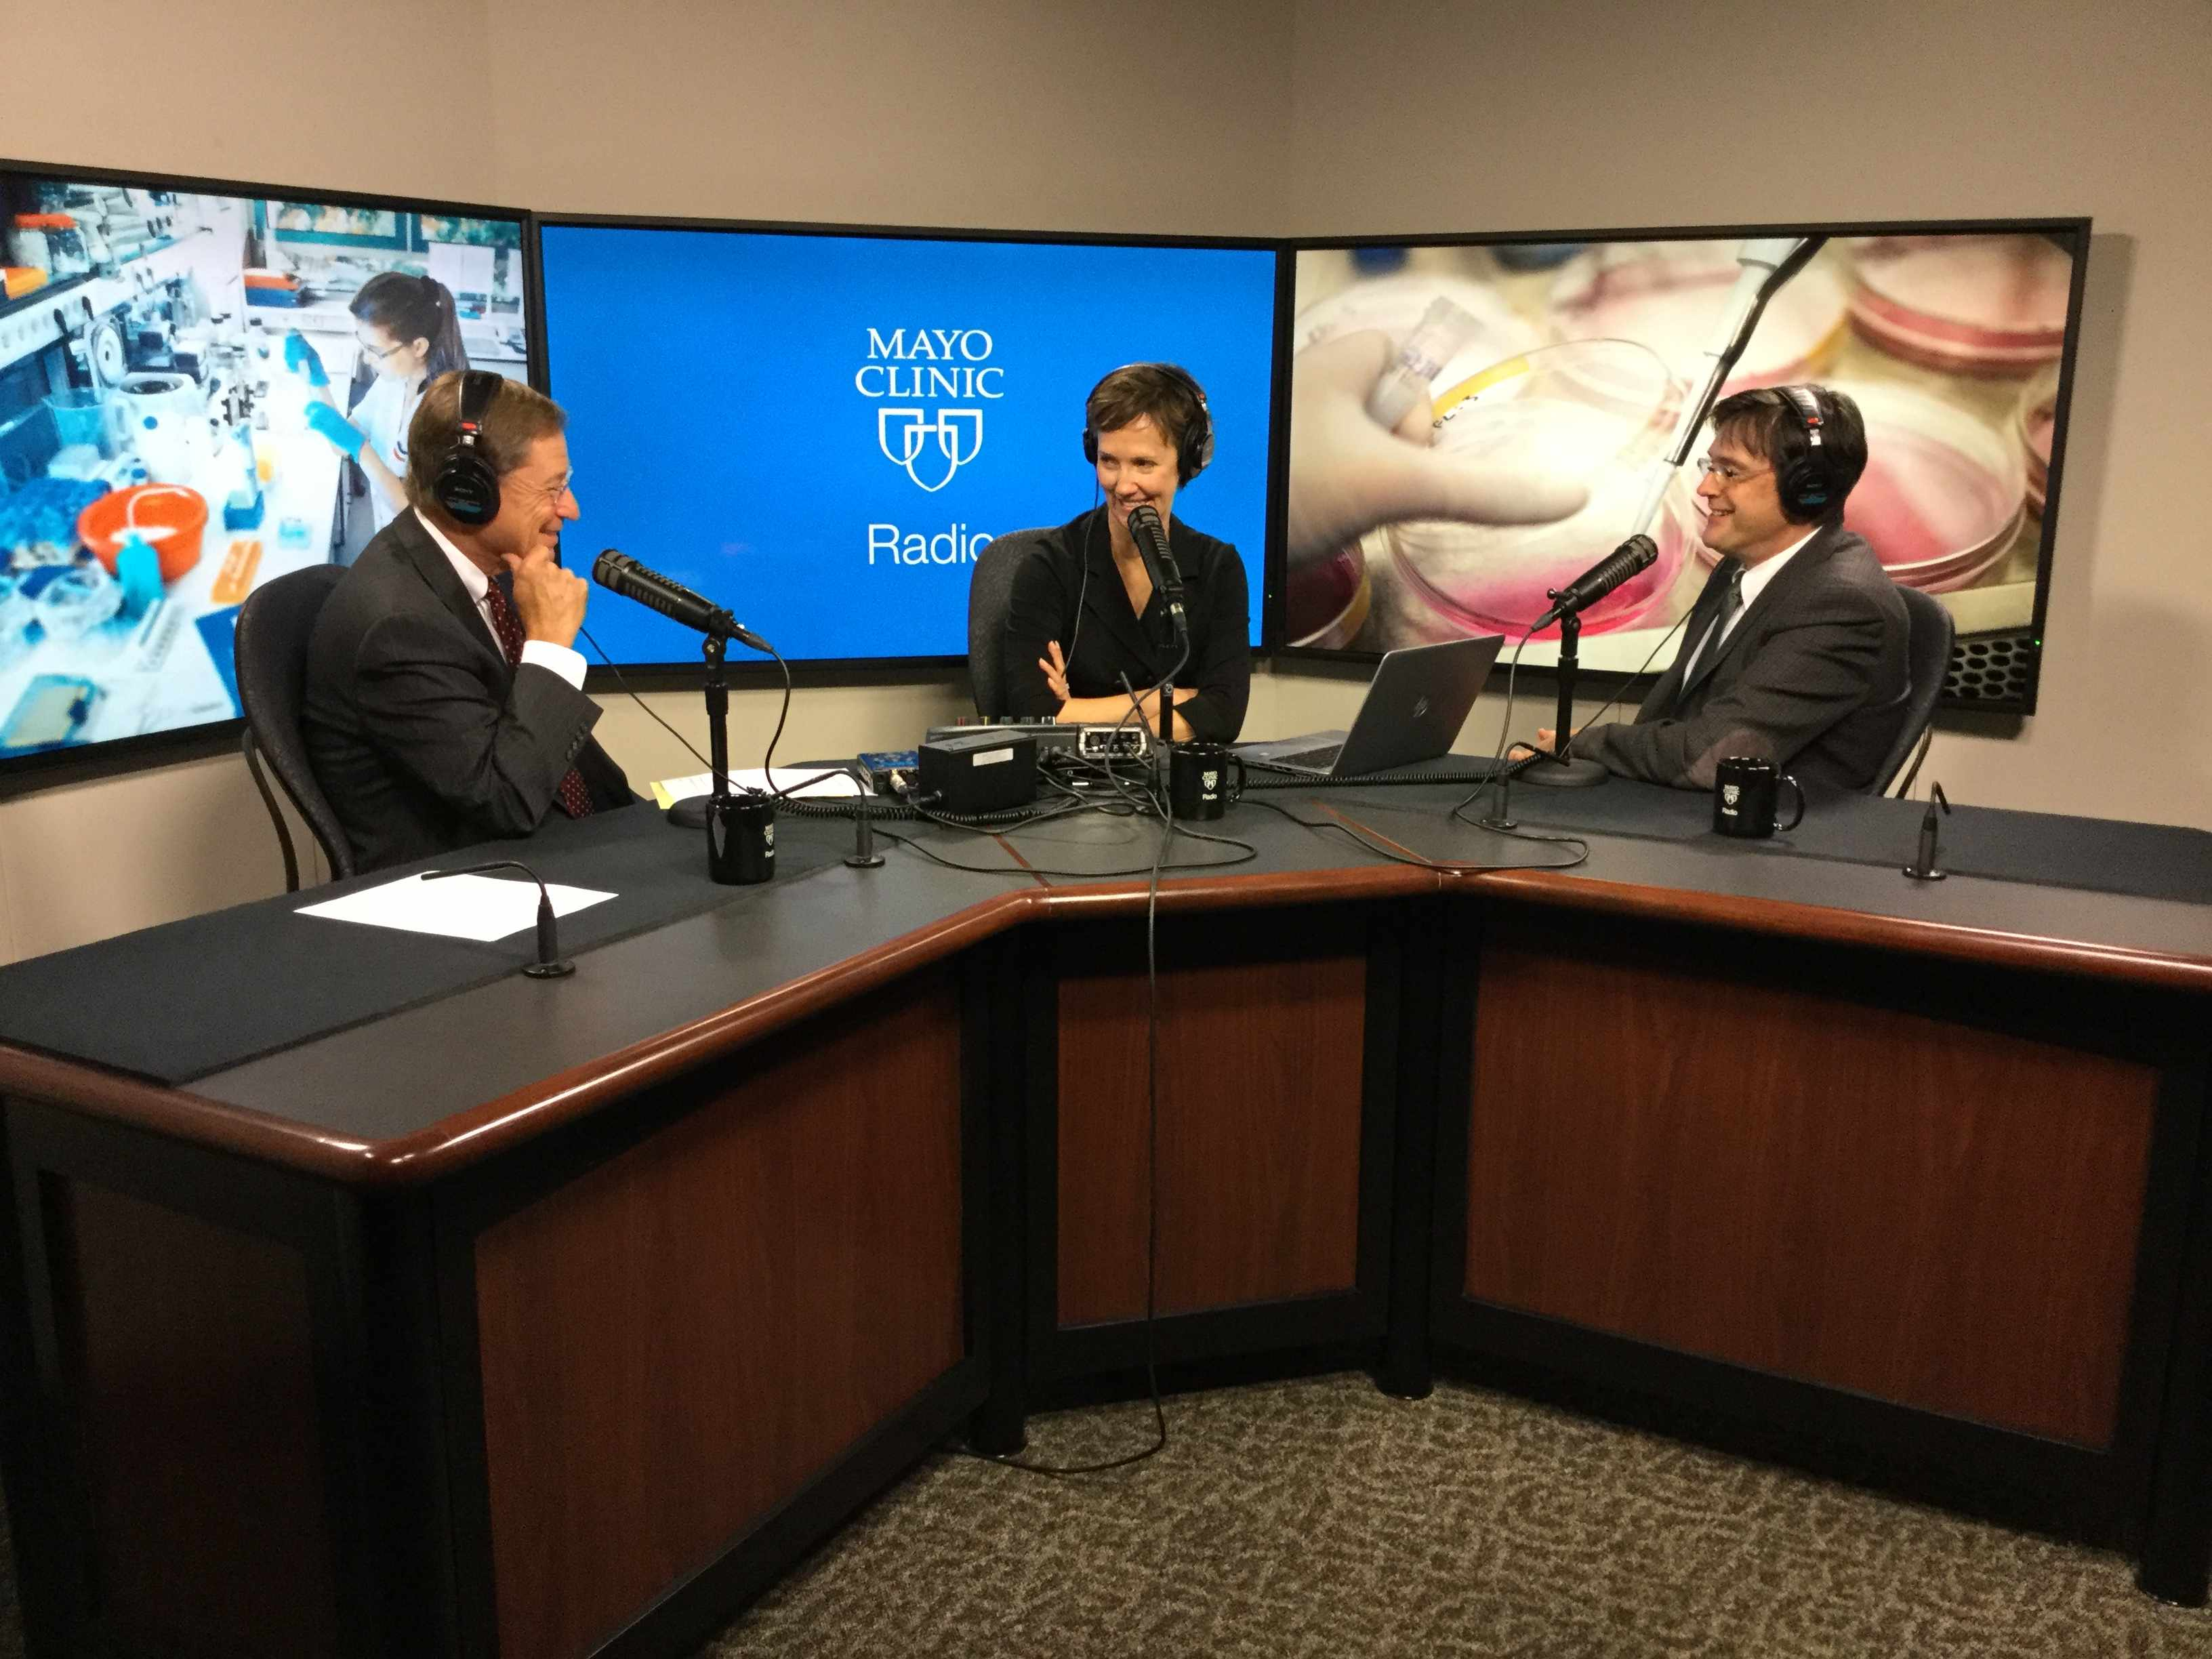 Dr. Svetomir Markovic being interviewed on Mayo Clinic Radio